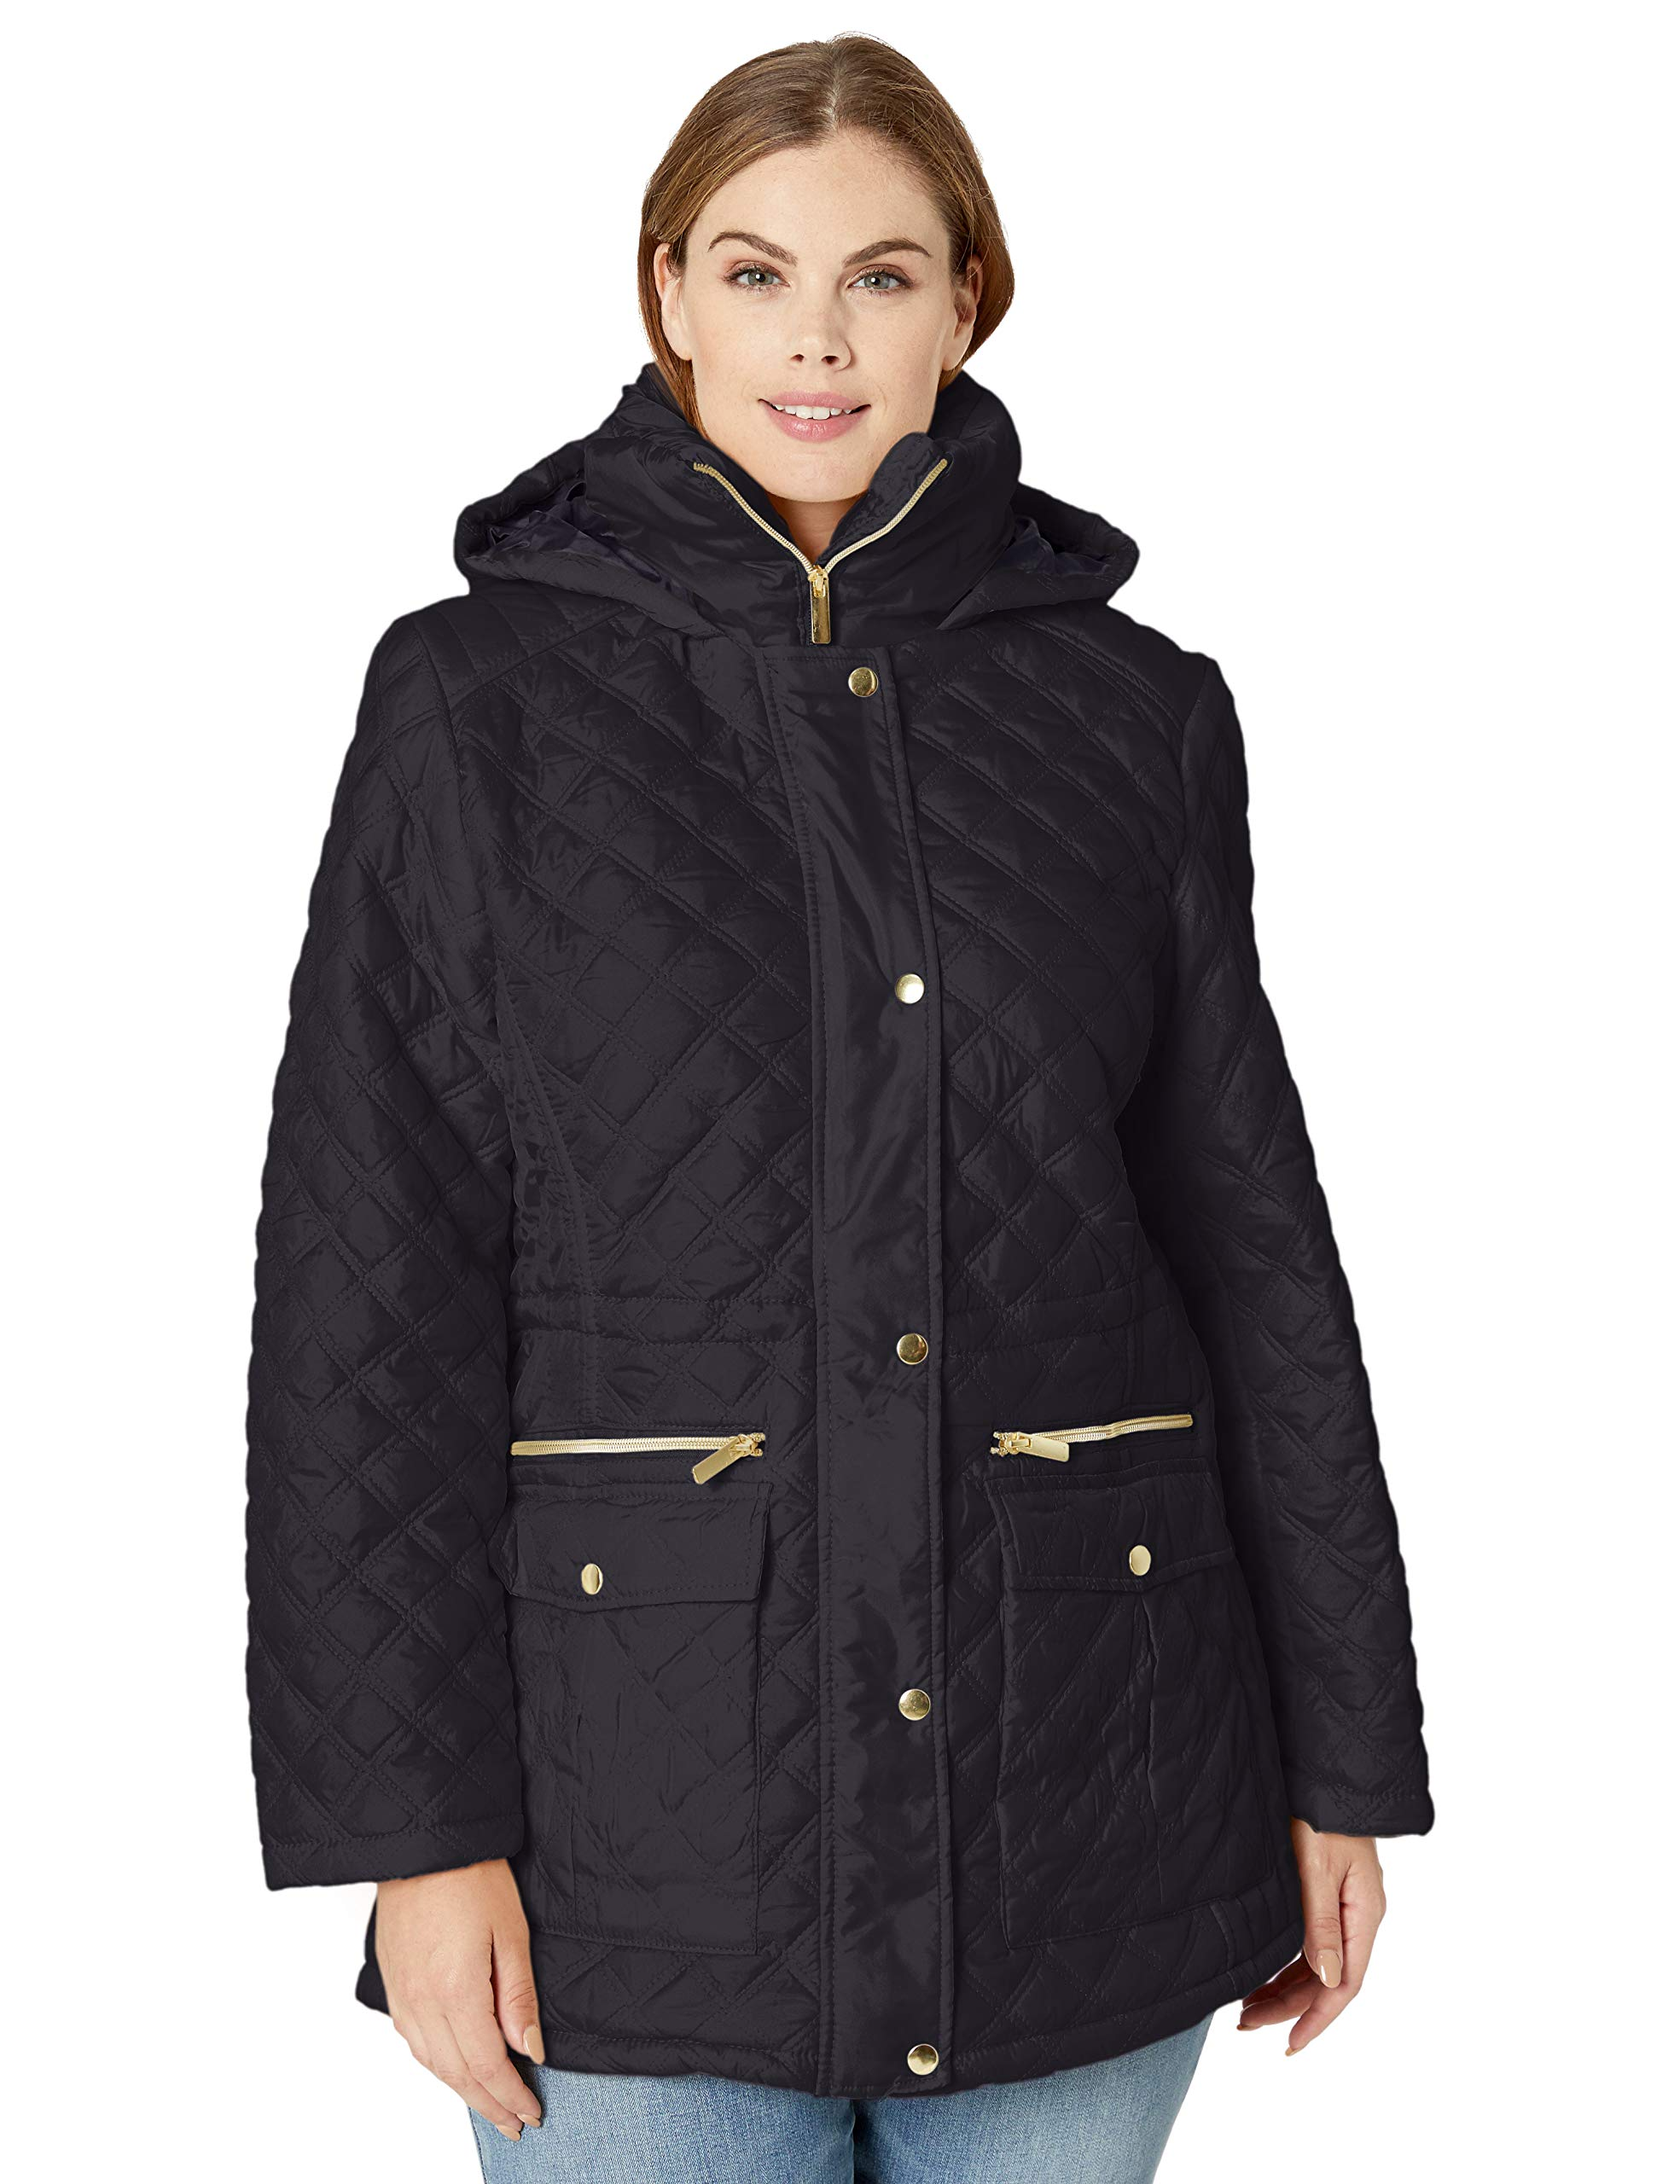 Big Chill Women's Plus Size Diamond Quilted Anorak Jacket, Black, 3X by Big Chill